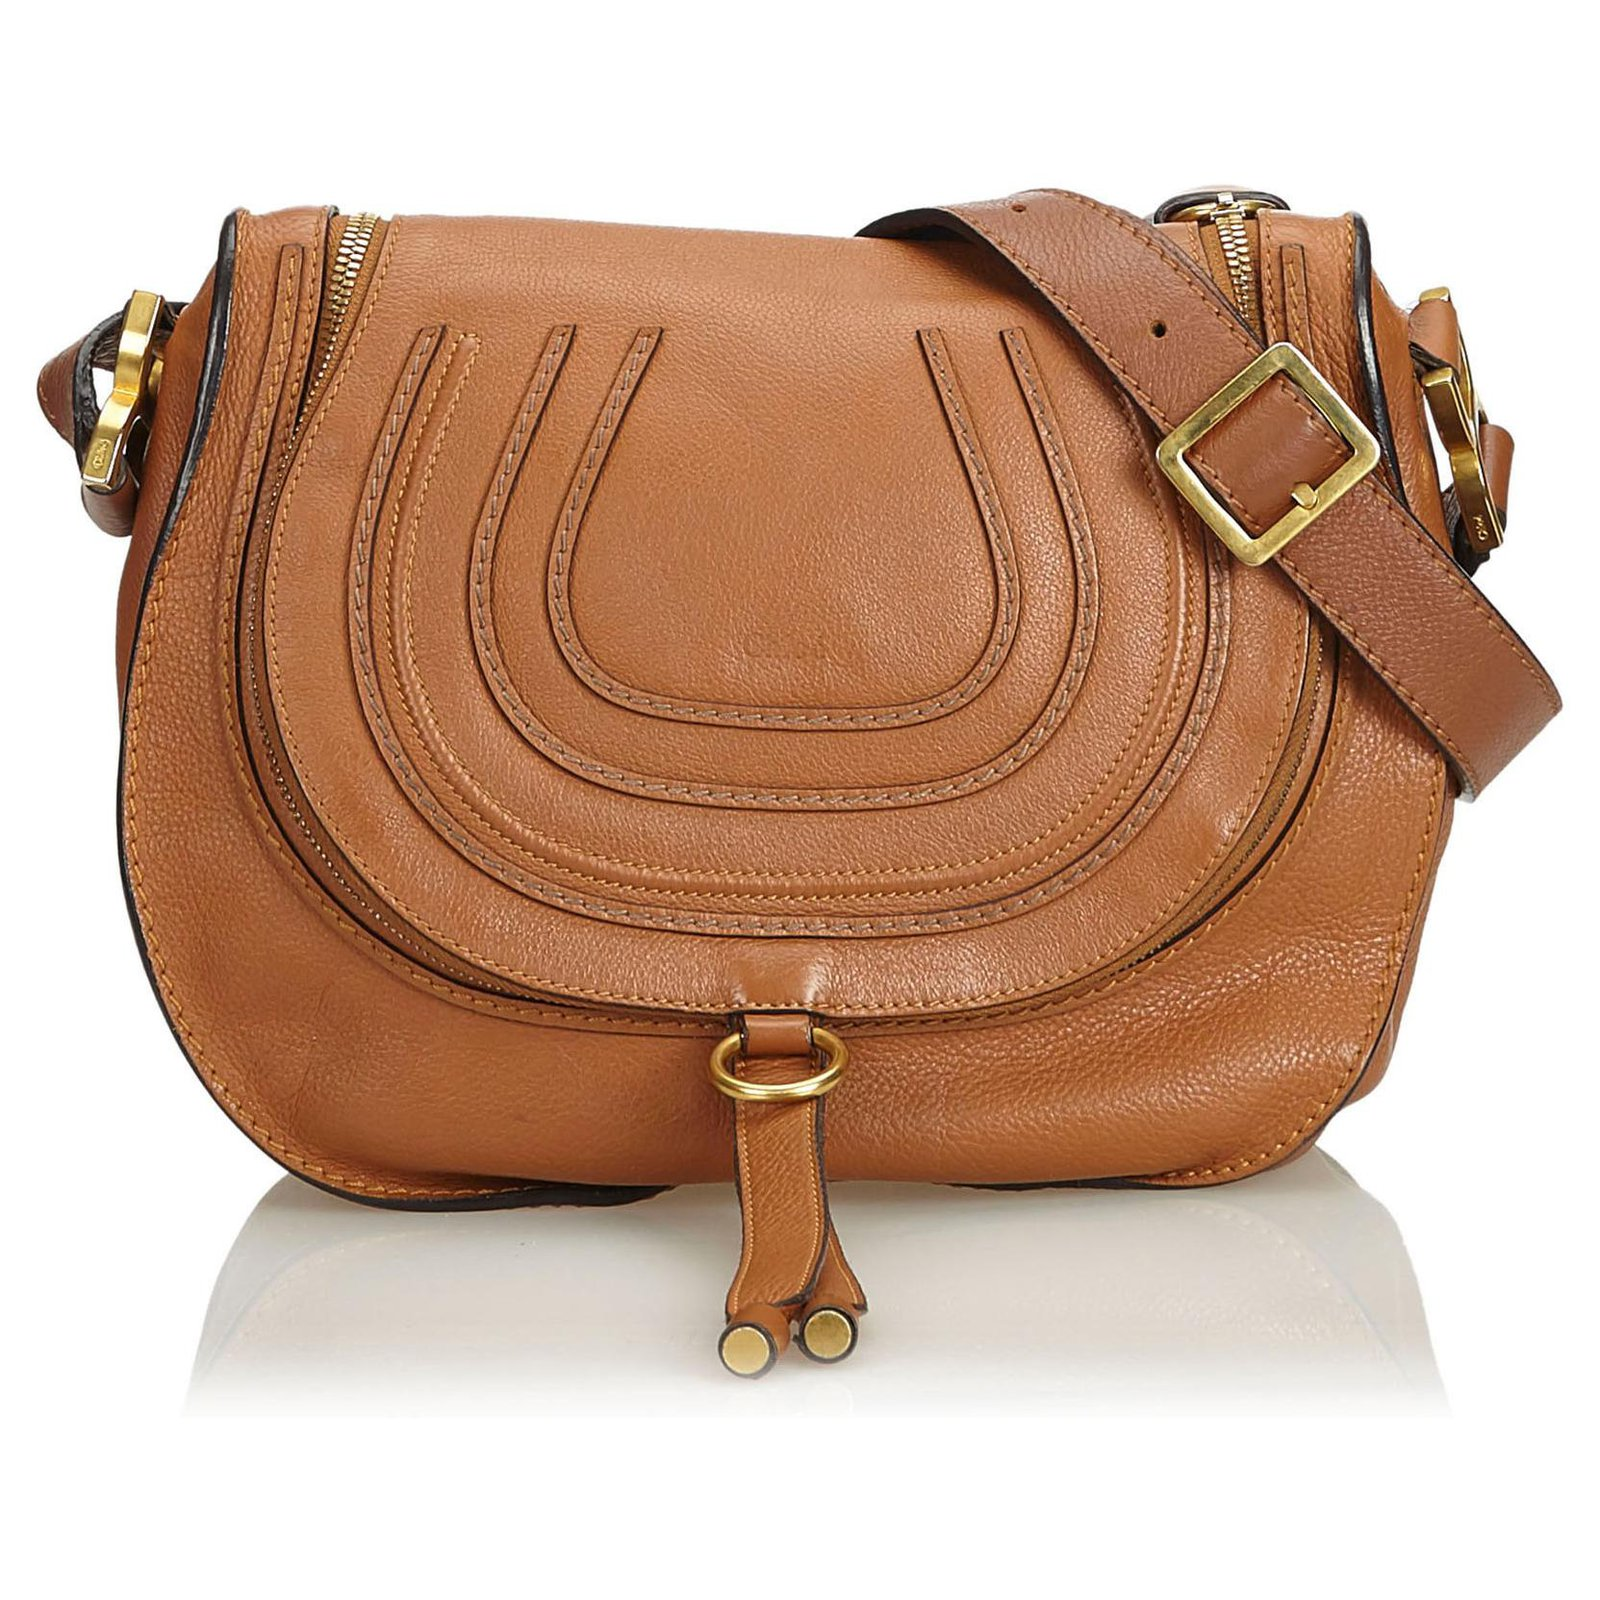 469bdd7a8de Chloé Chloe Brown Leather Marcie Crossbody Bag Handbags Leather,Other Brown,Light  brown ref